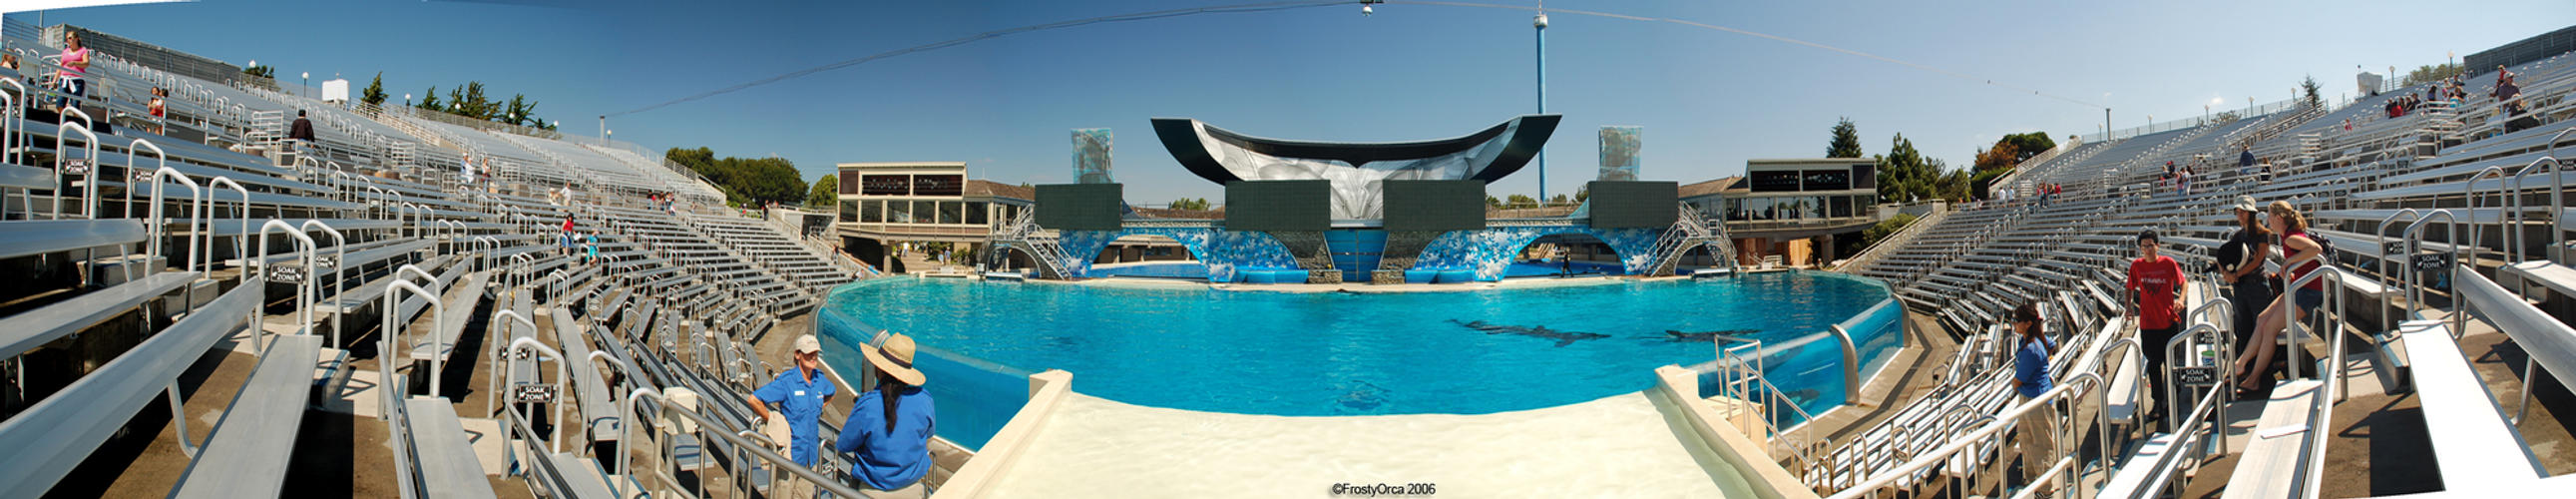 Sea World CA panoramic 2.0 by Frosty-Orca